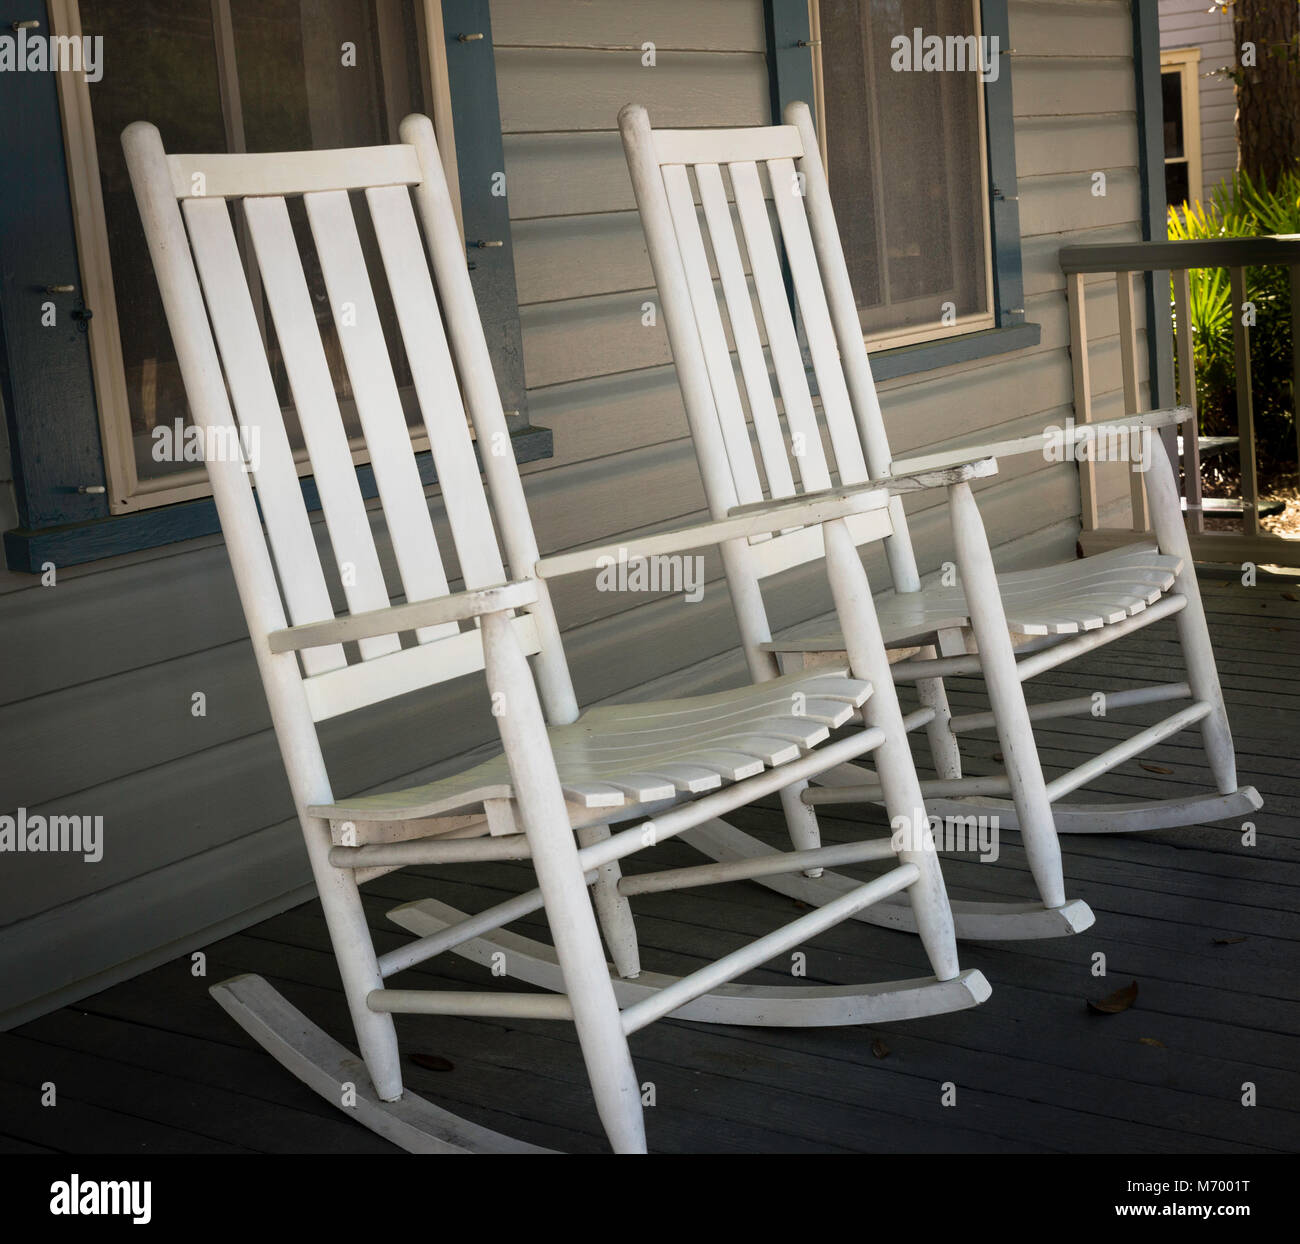 Old Fashioned Wooden Rocking Chairs On An Outdoor Covered Veranda